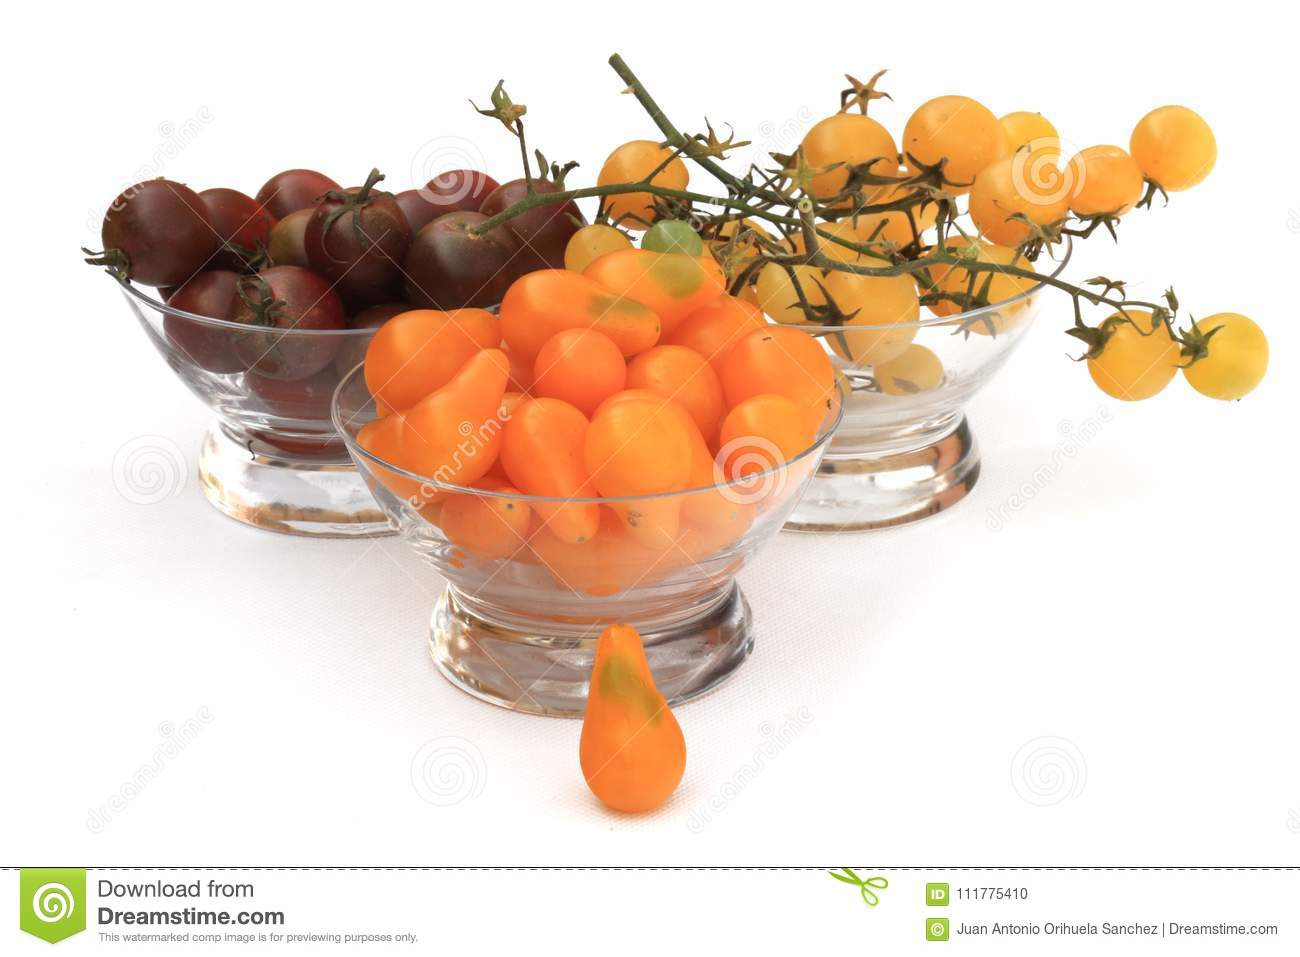 Three glass bowls filled with cherry tomatoes three different types